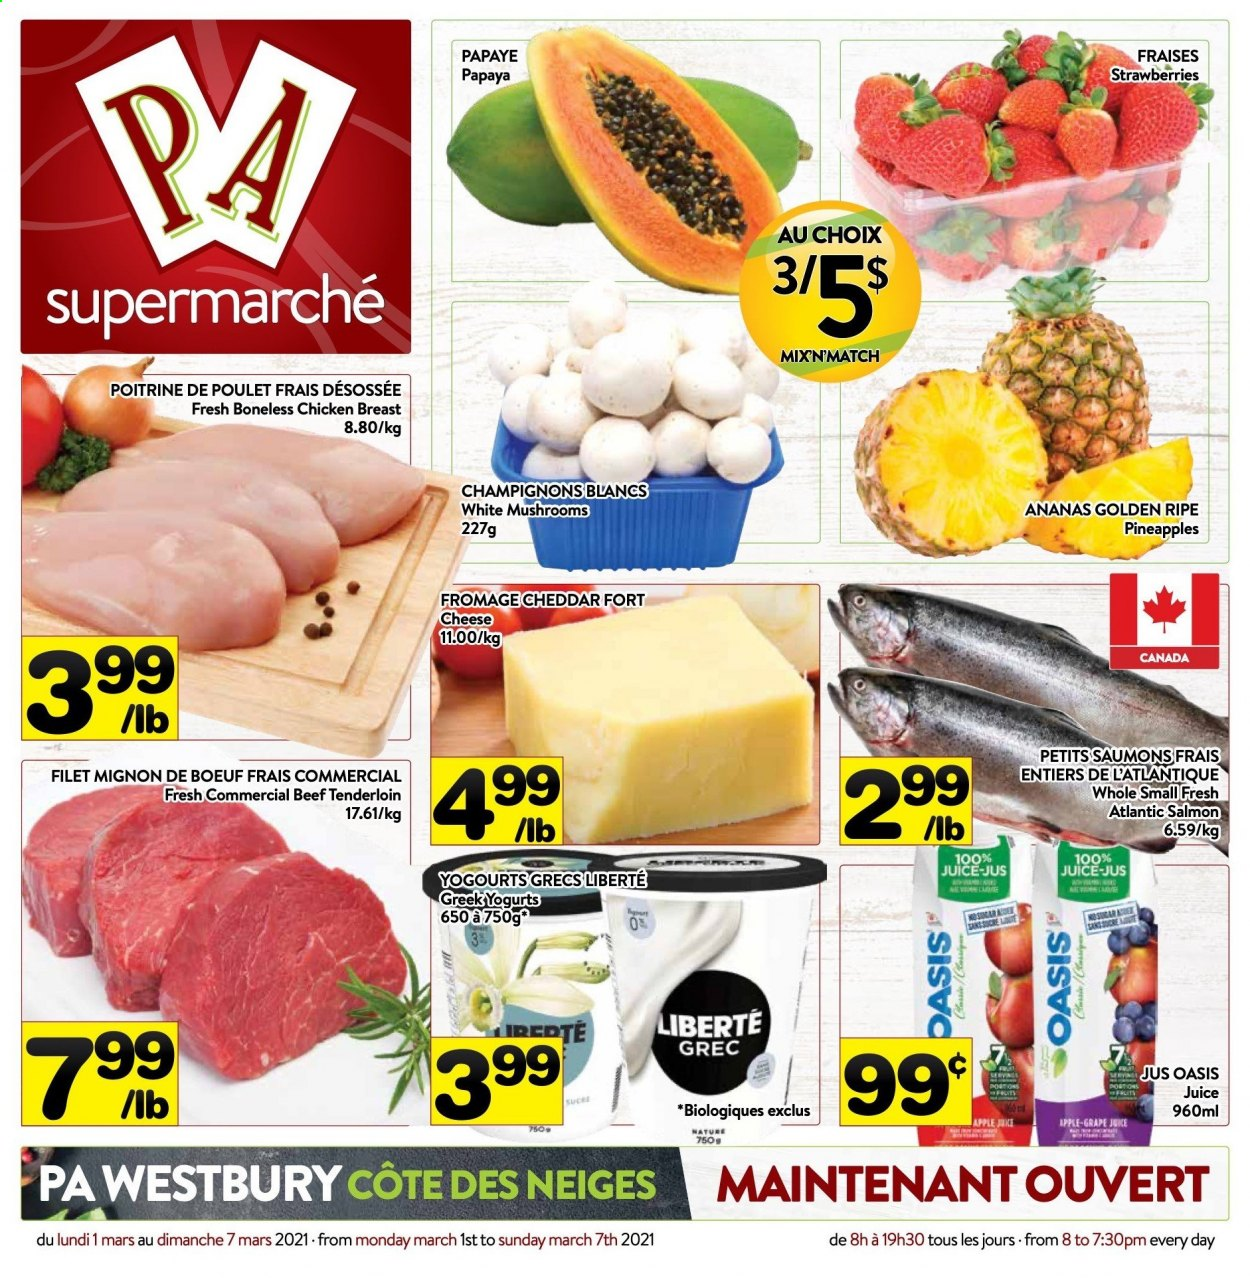 PA Supermarché Flyer  - March 01, 2021 - March 07, 2021. Page 1.